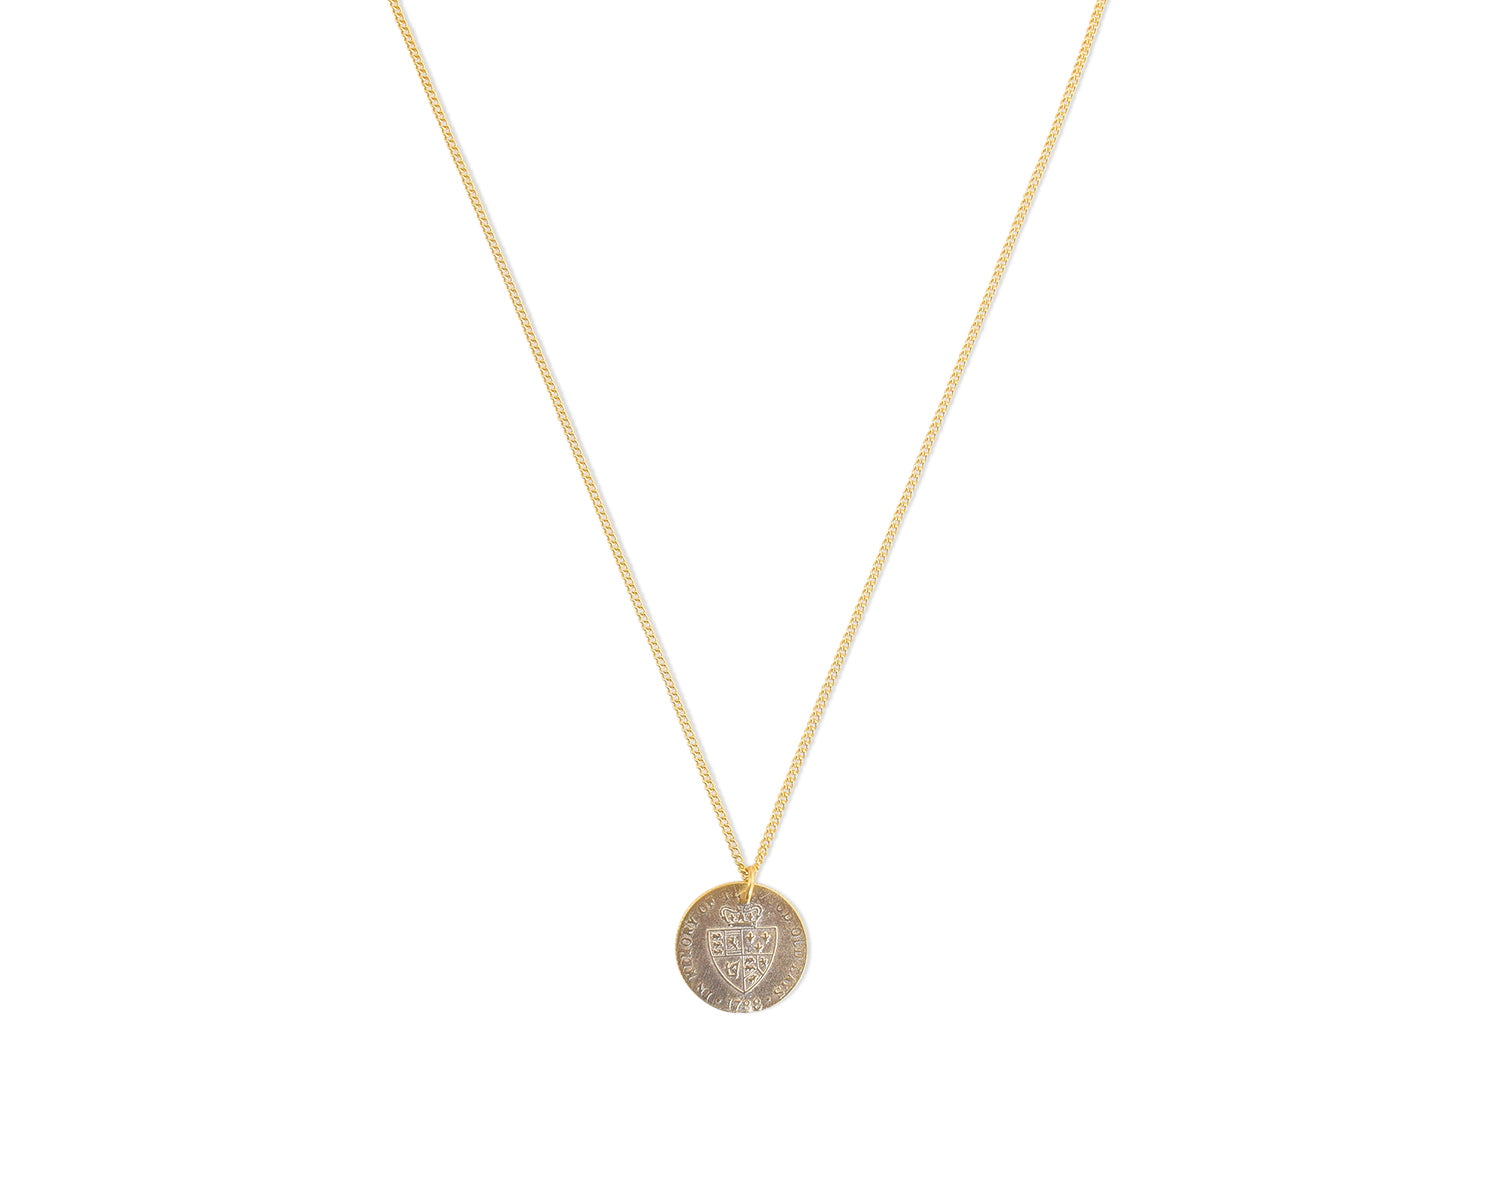 Spade Shield Coin Necklace 16""